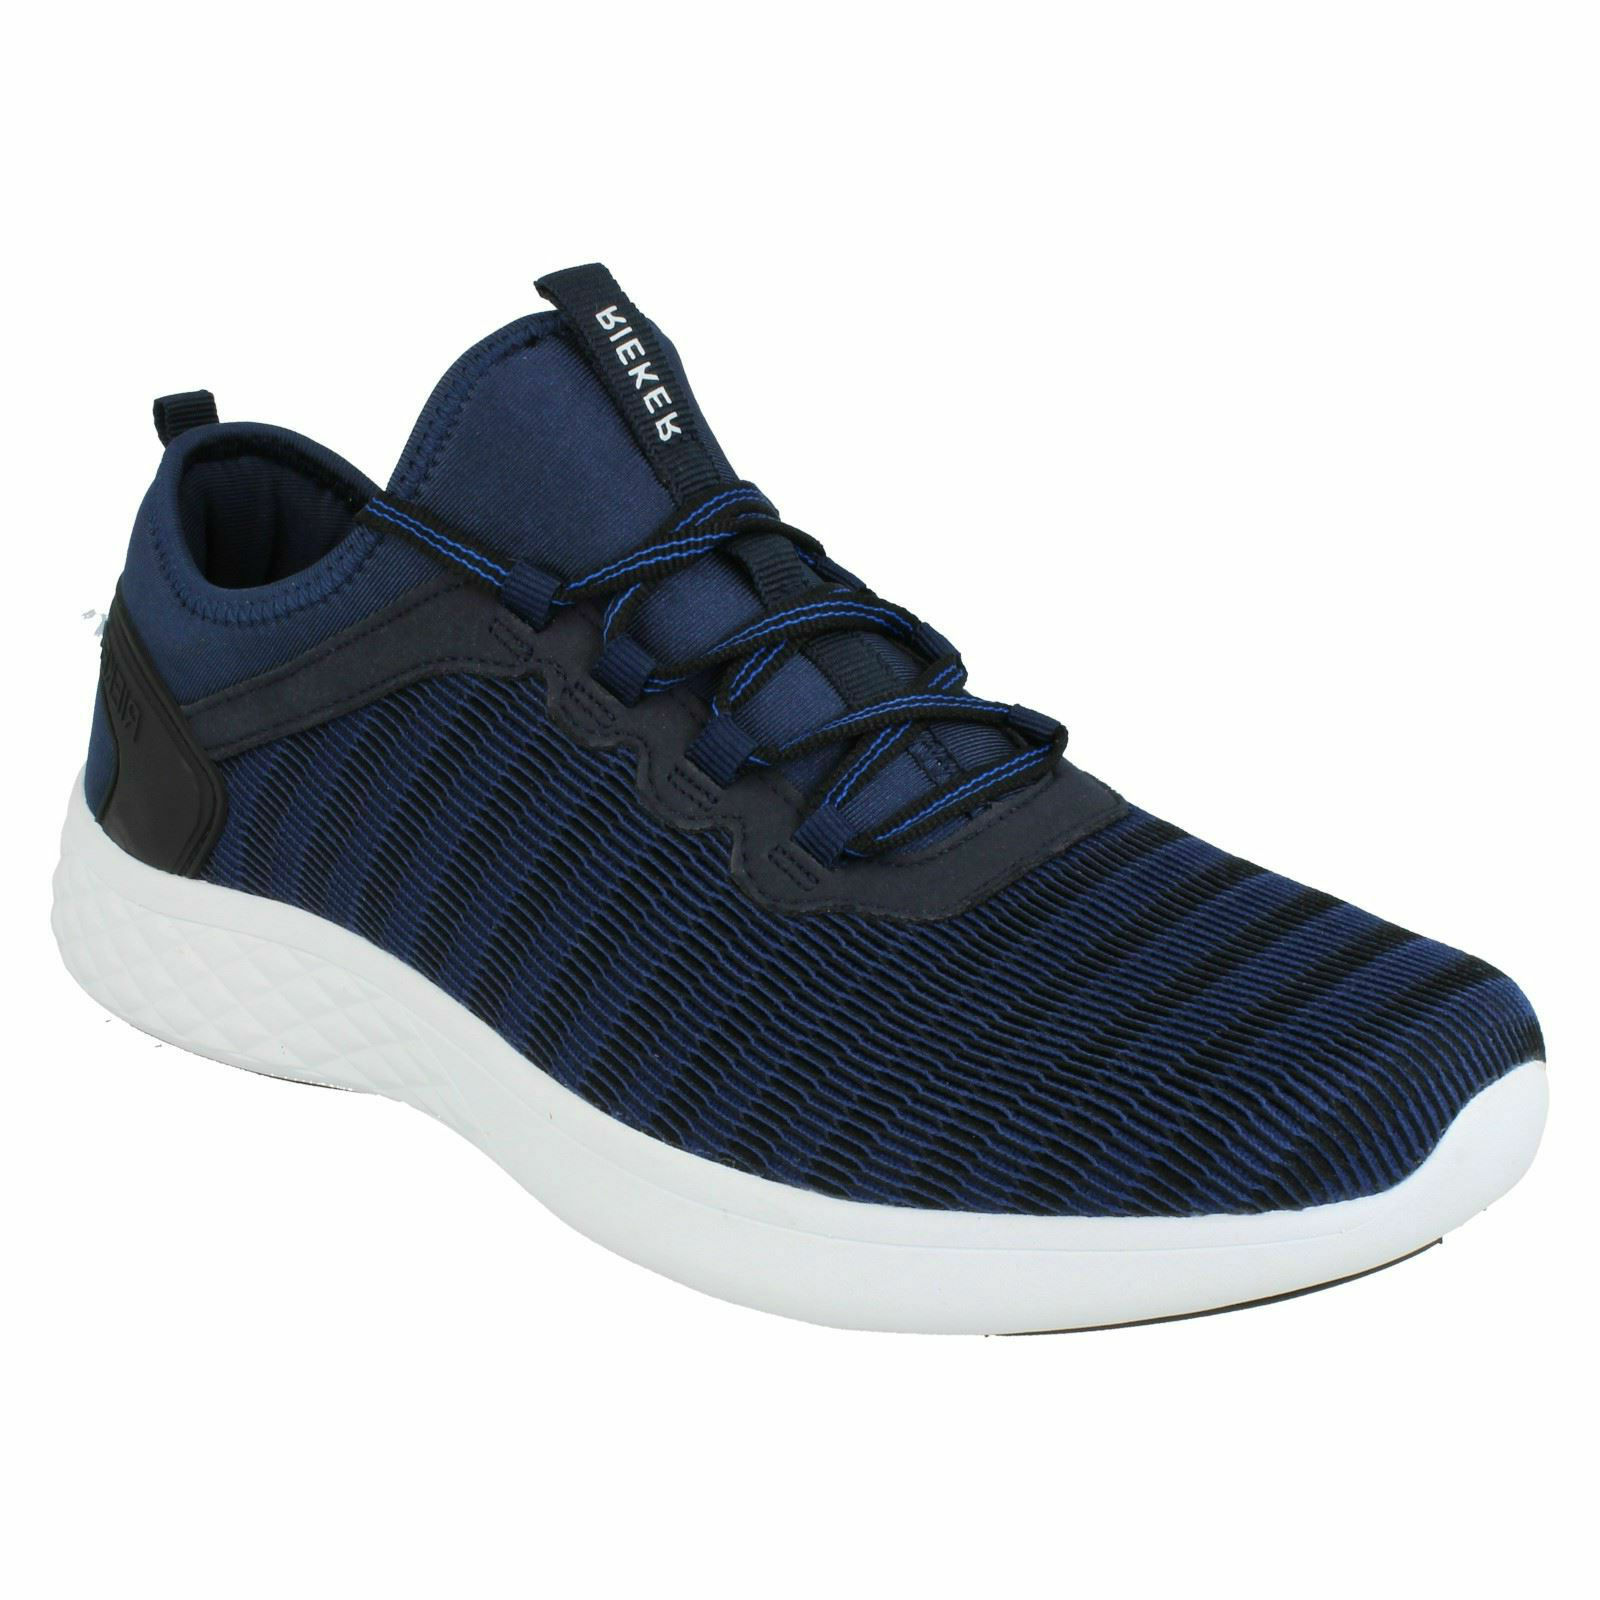 RIEKER MENS B9753 blueE LIGHTWEIGHT LACE UP TRAINERS CASUAL EVERYDAY SHOES SIZE